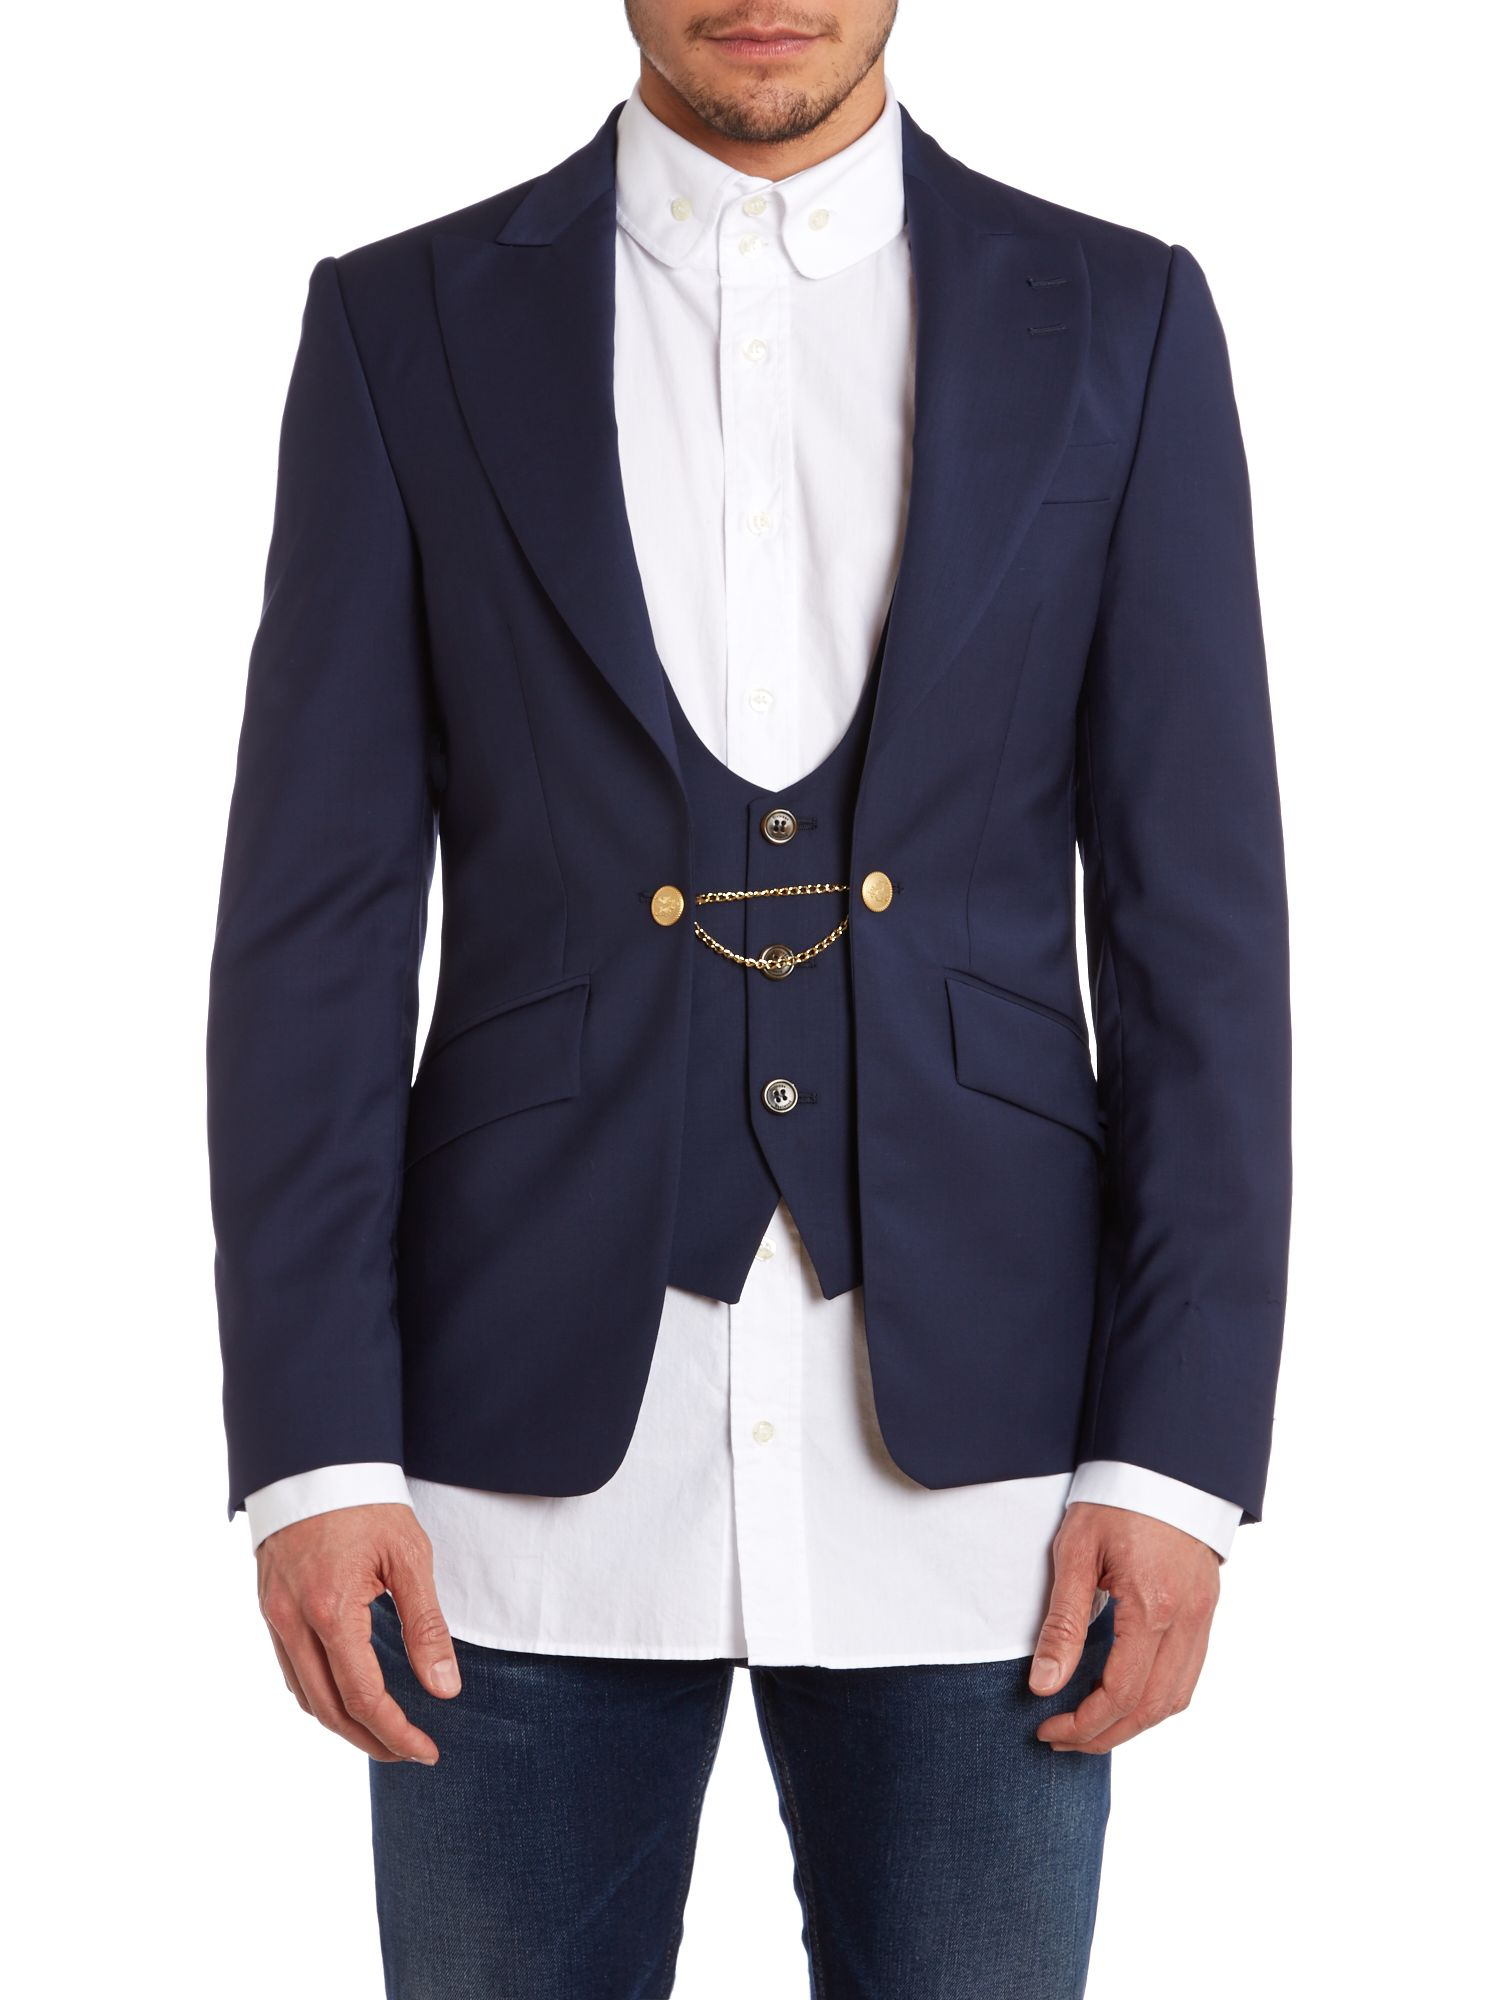 Blazer with wasitcoat and chain fastening